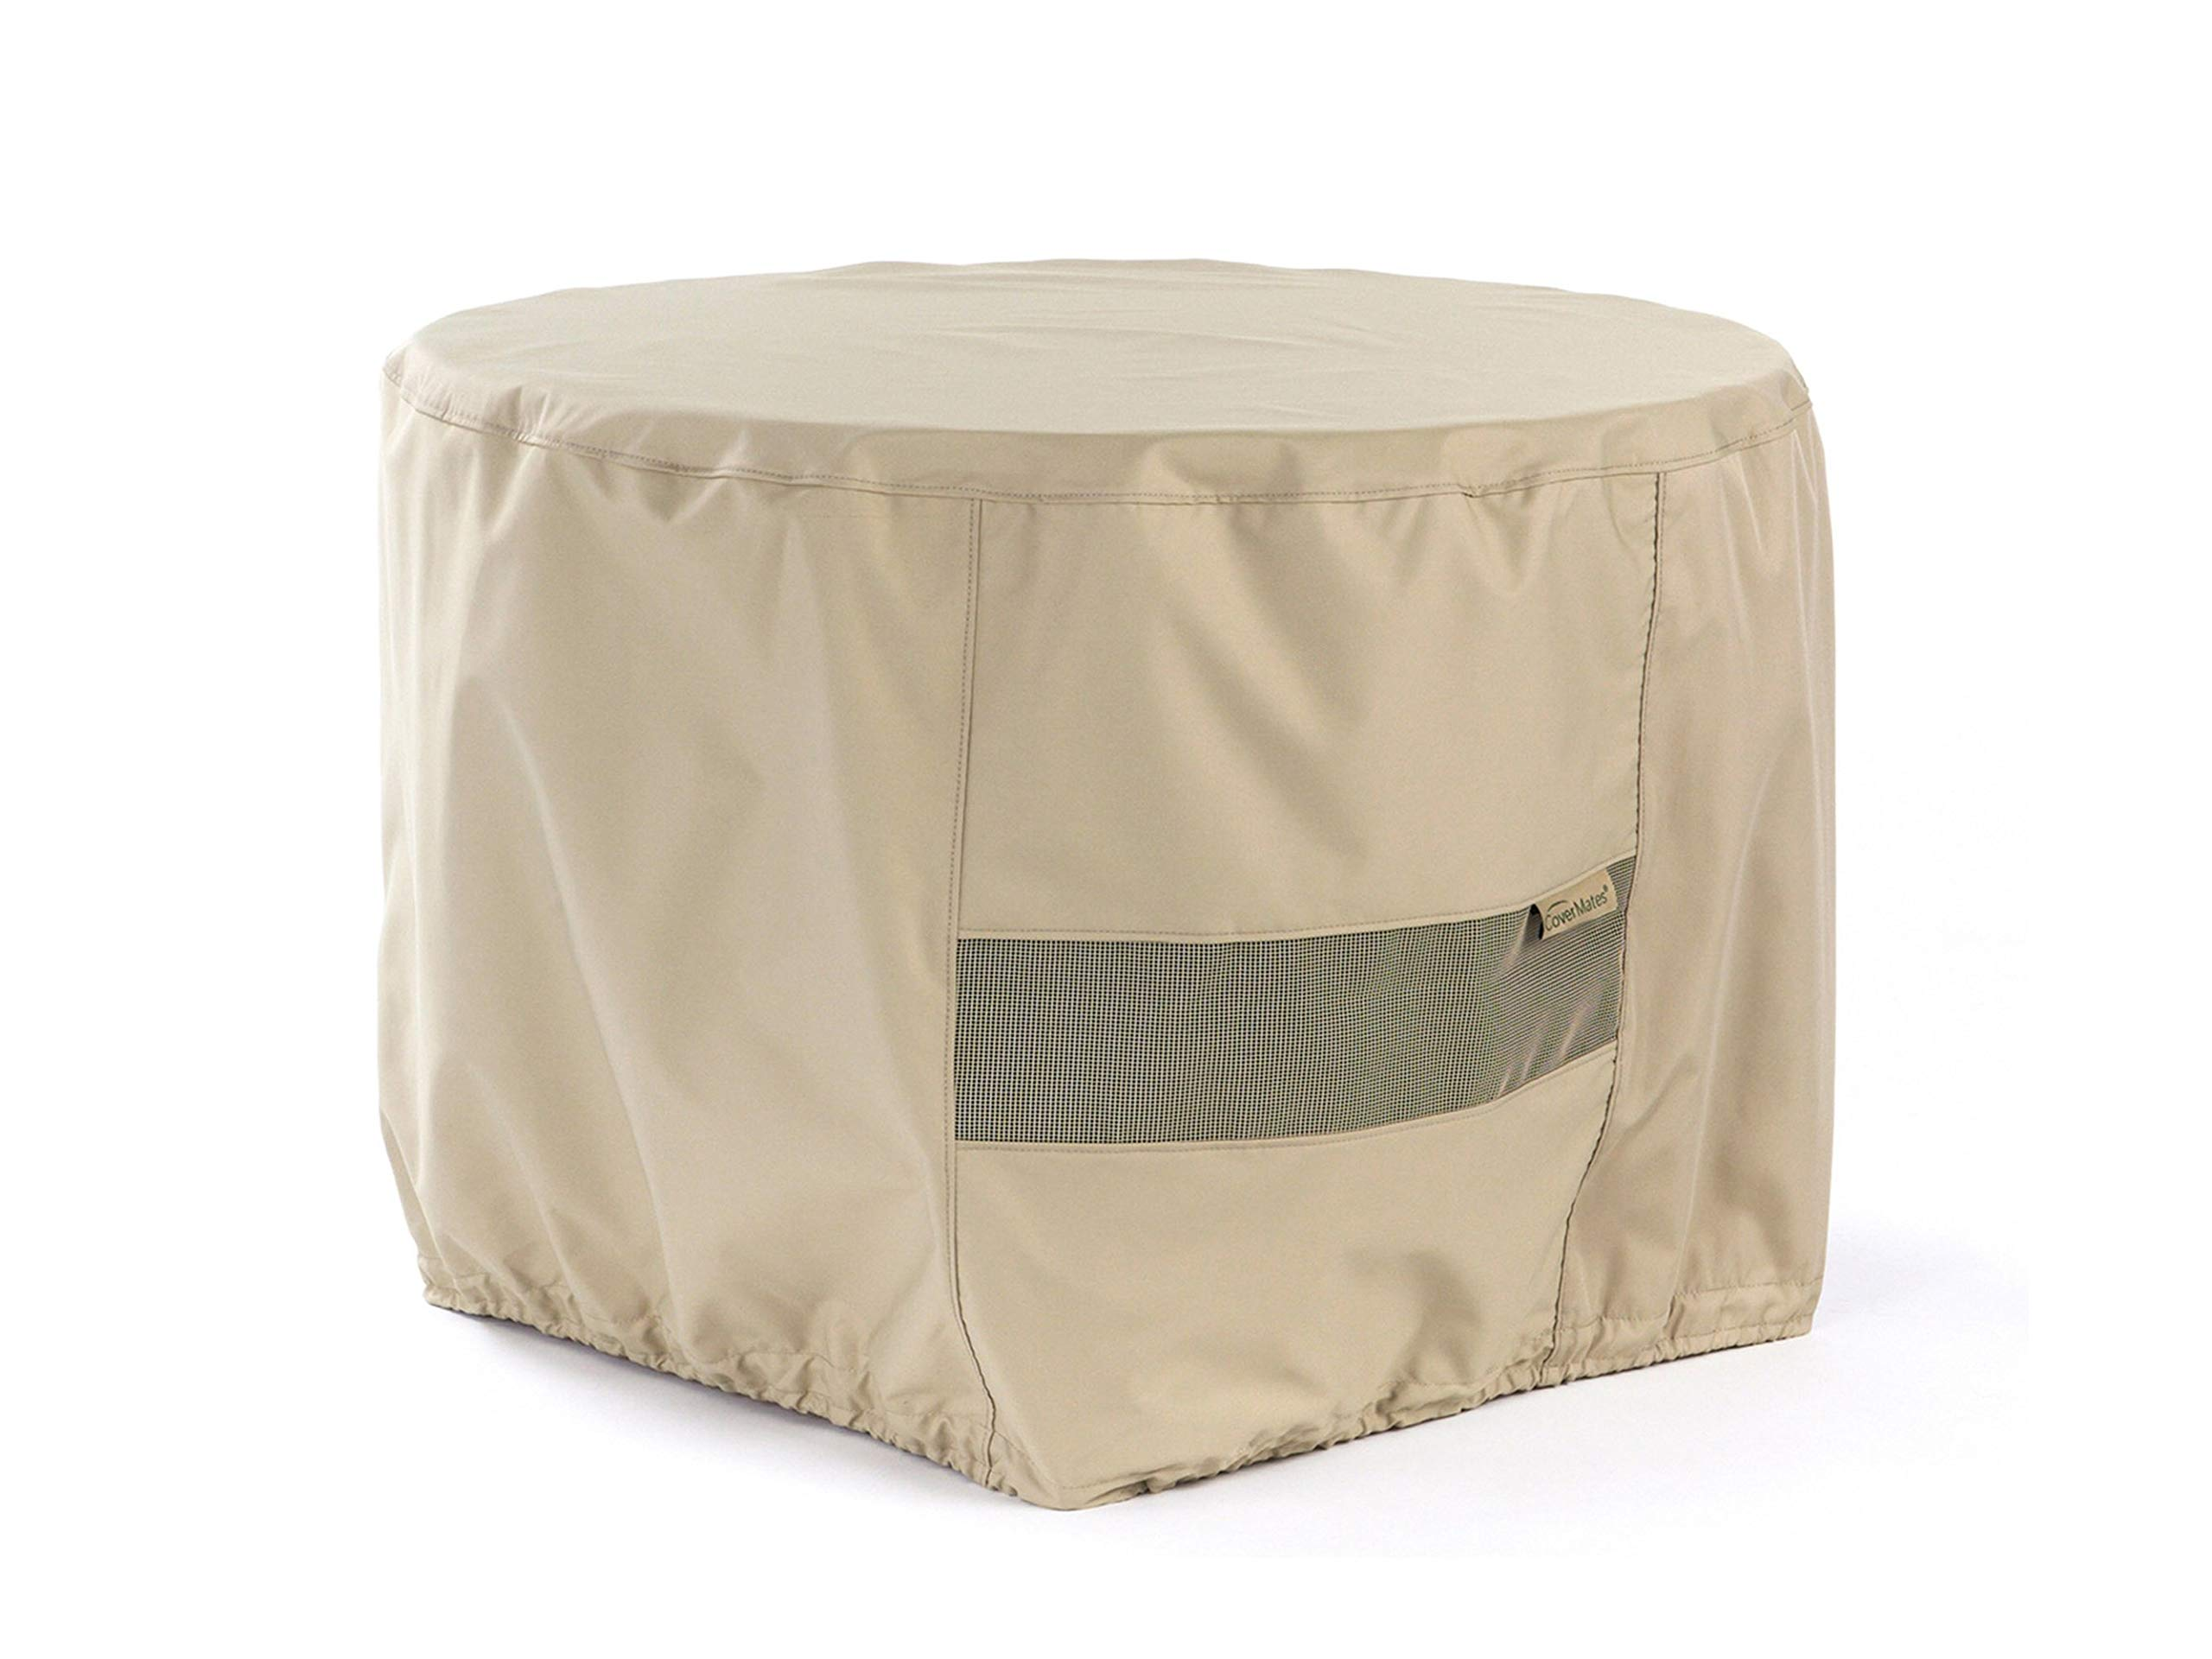 Covermates - Round Firepit Cover - 54DIAMETER x 25H - Elite Collection - 3 YR Warranty - Year Around Protection - Khaki by Covermates